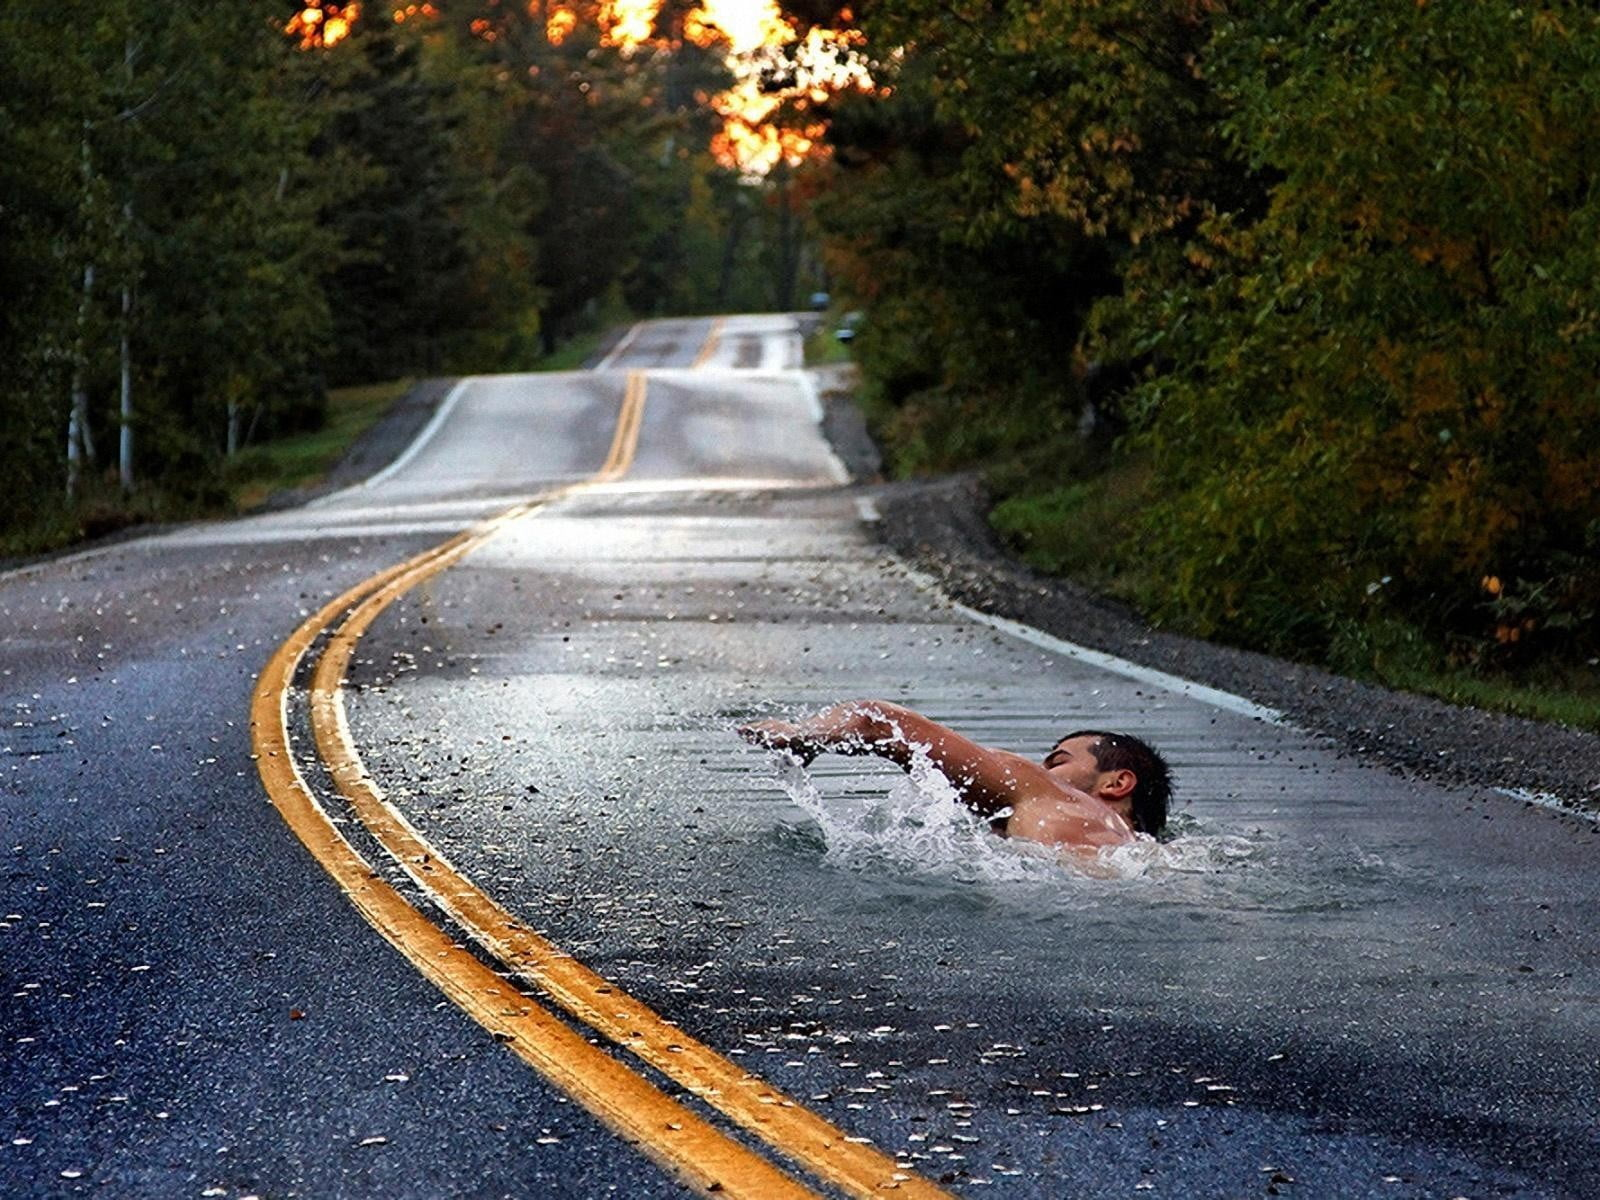 Gray concrete road field body of water with man swimming between ...